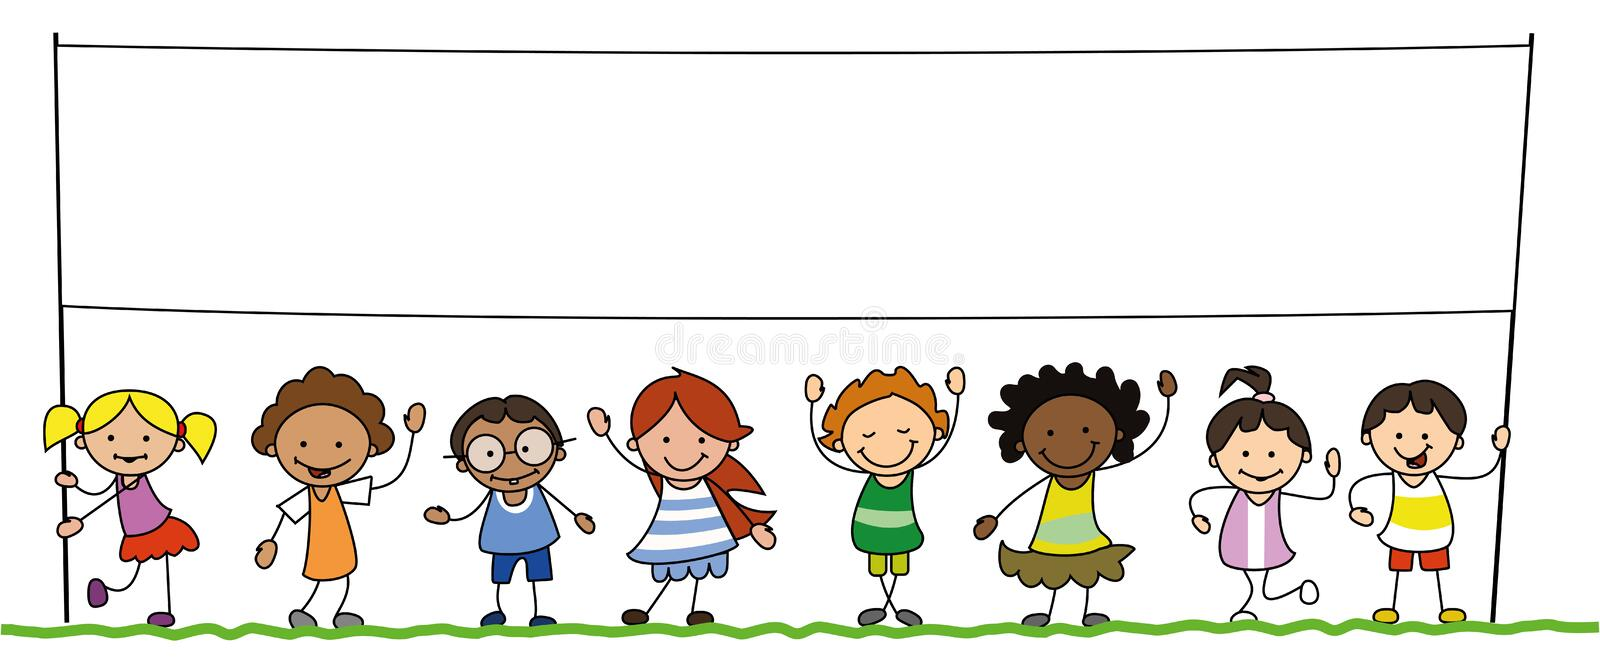 Group Of Kids And Banner Stock Vector. Illustration Of